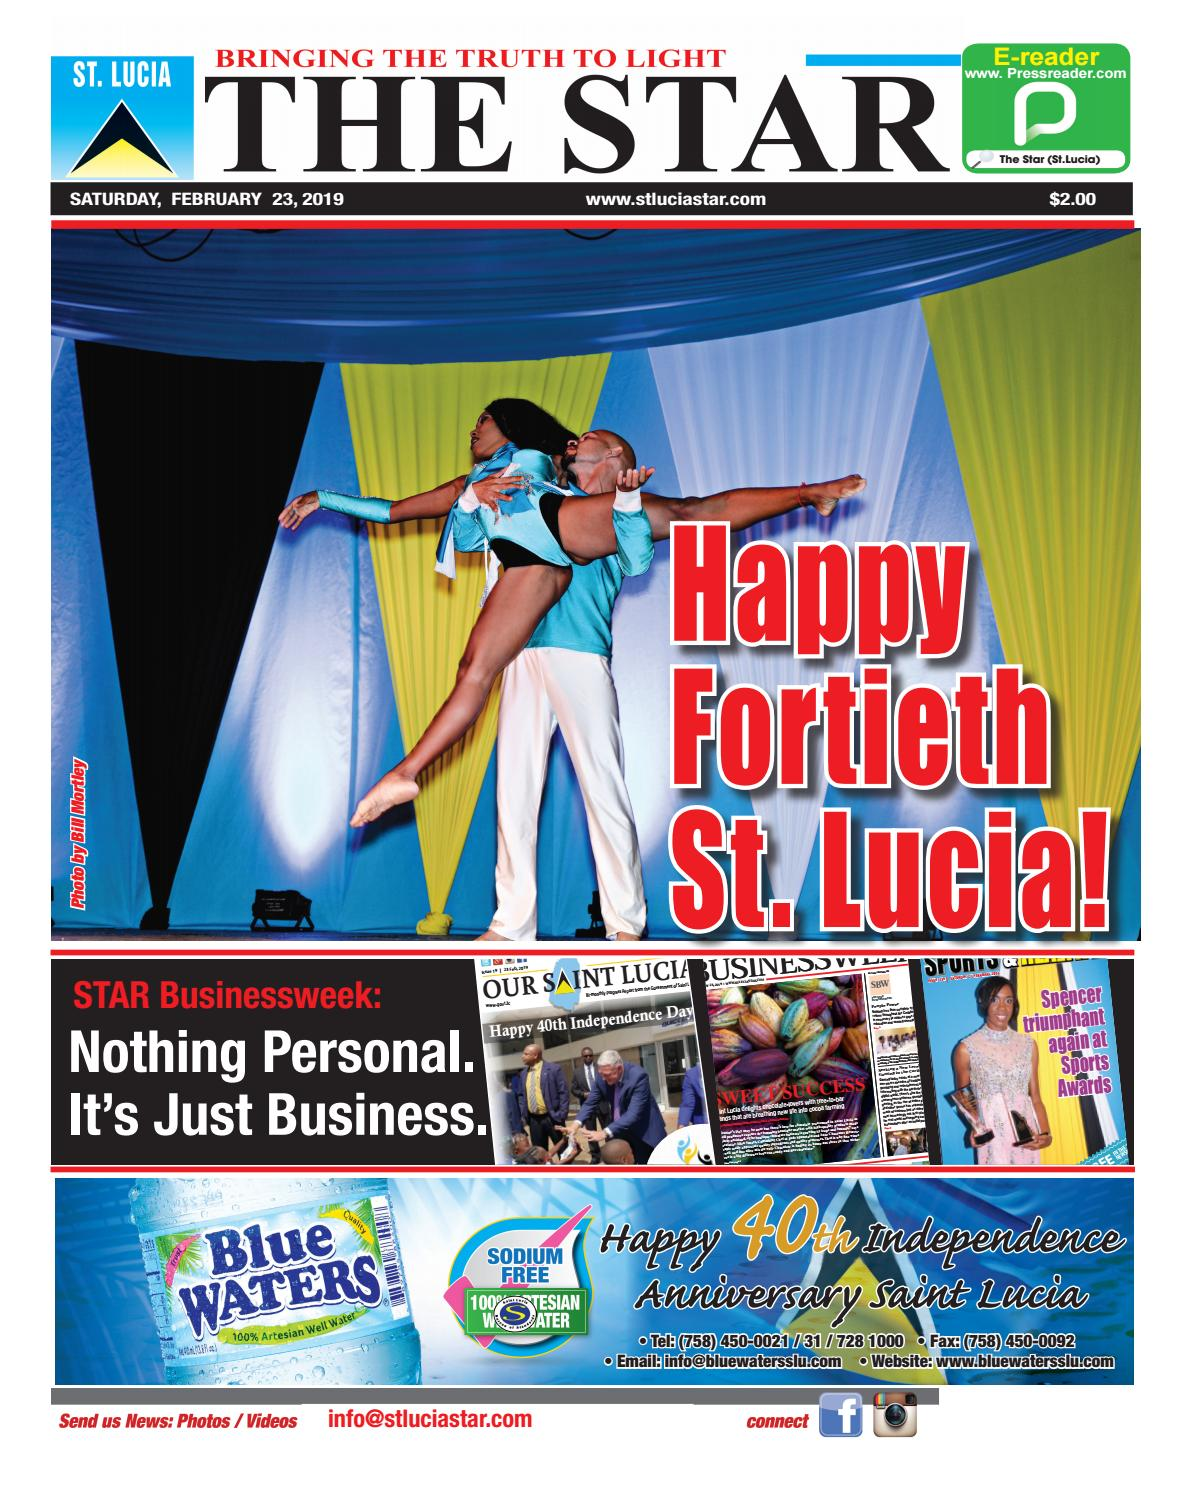 913c5d07bba Happy Fortieth St. Lucia! by STAR Publishing - issuu